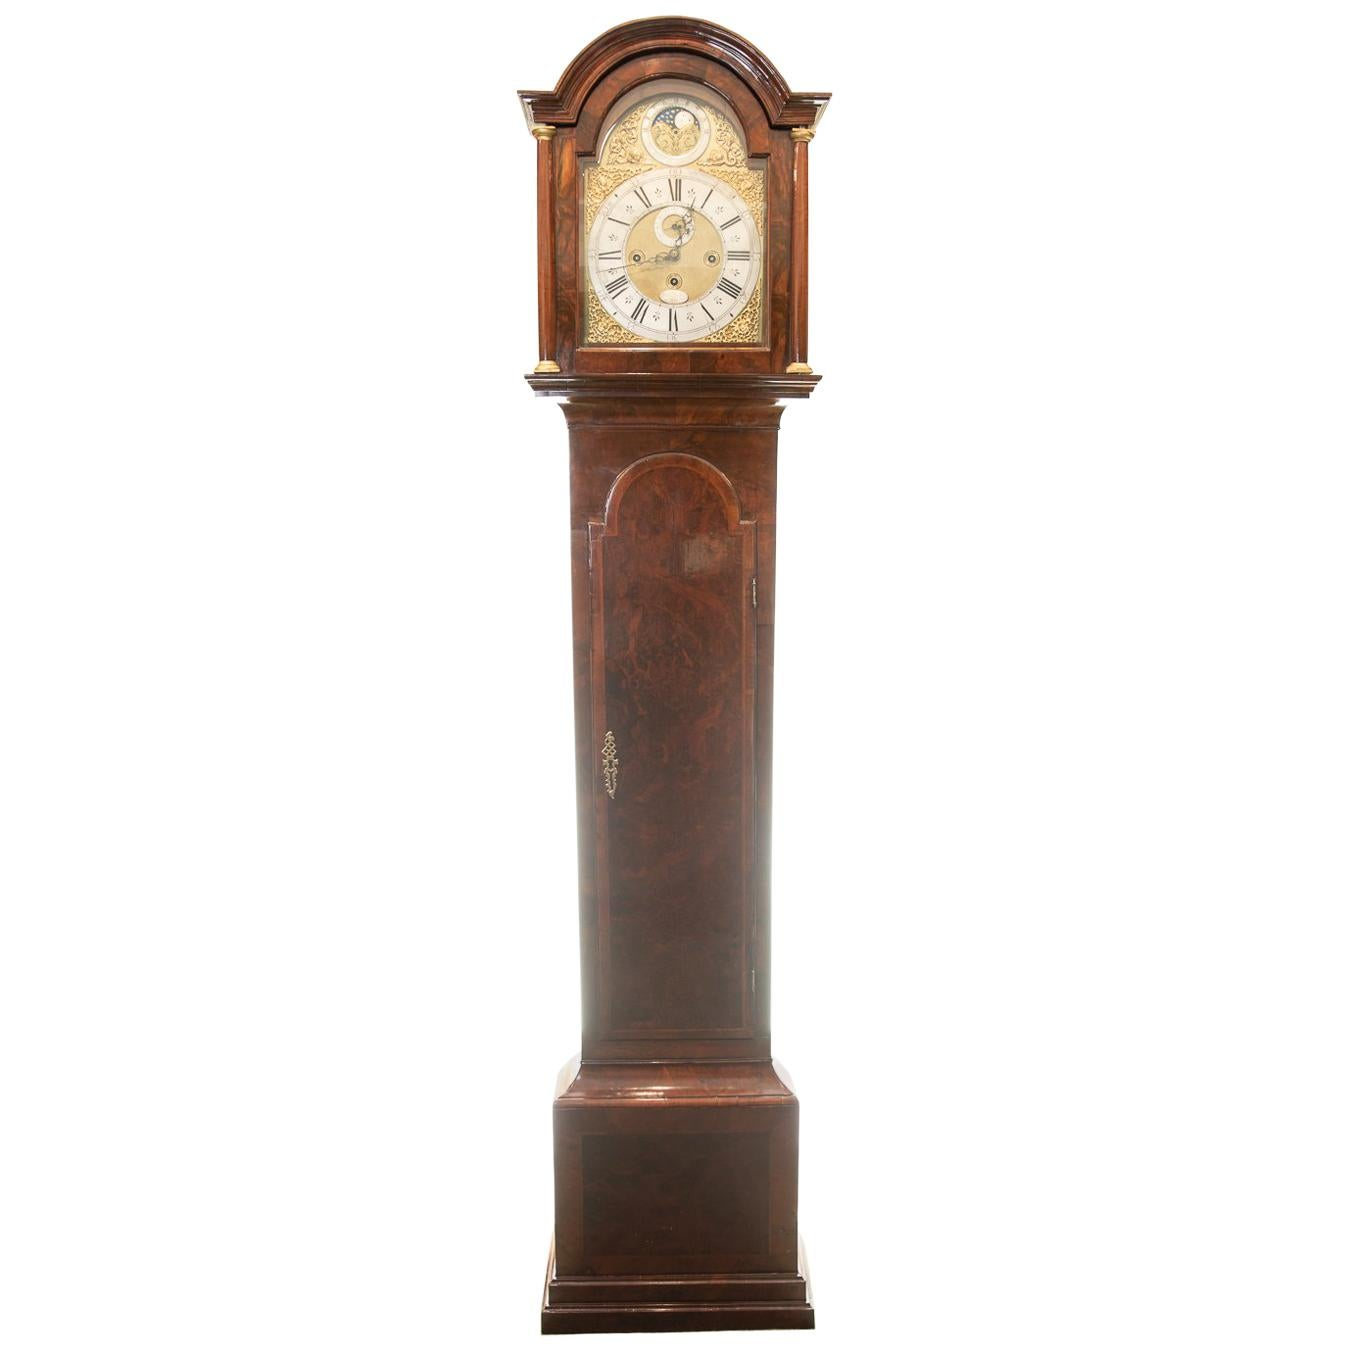 18th Century 8 Day Original Hour Striking, Quarter Chiming Longcase Clock